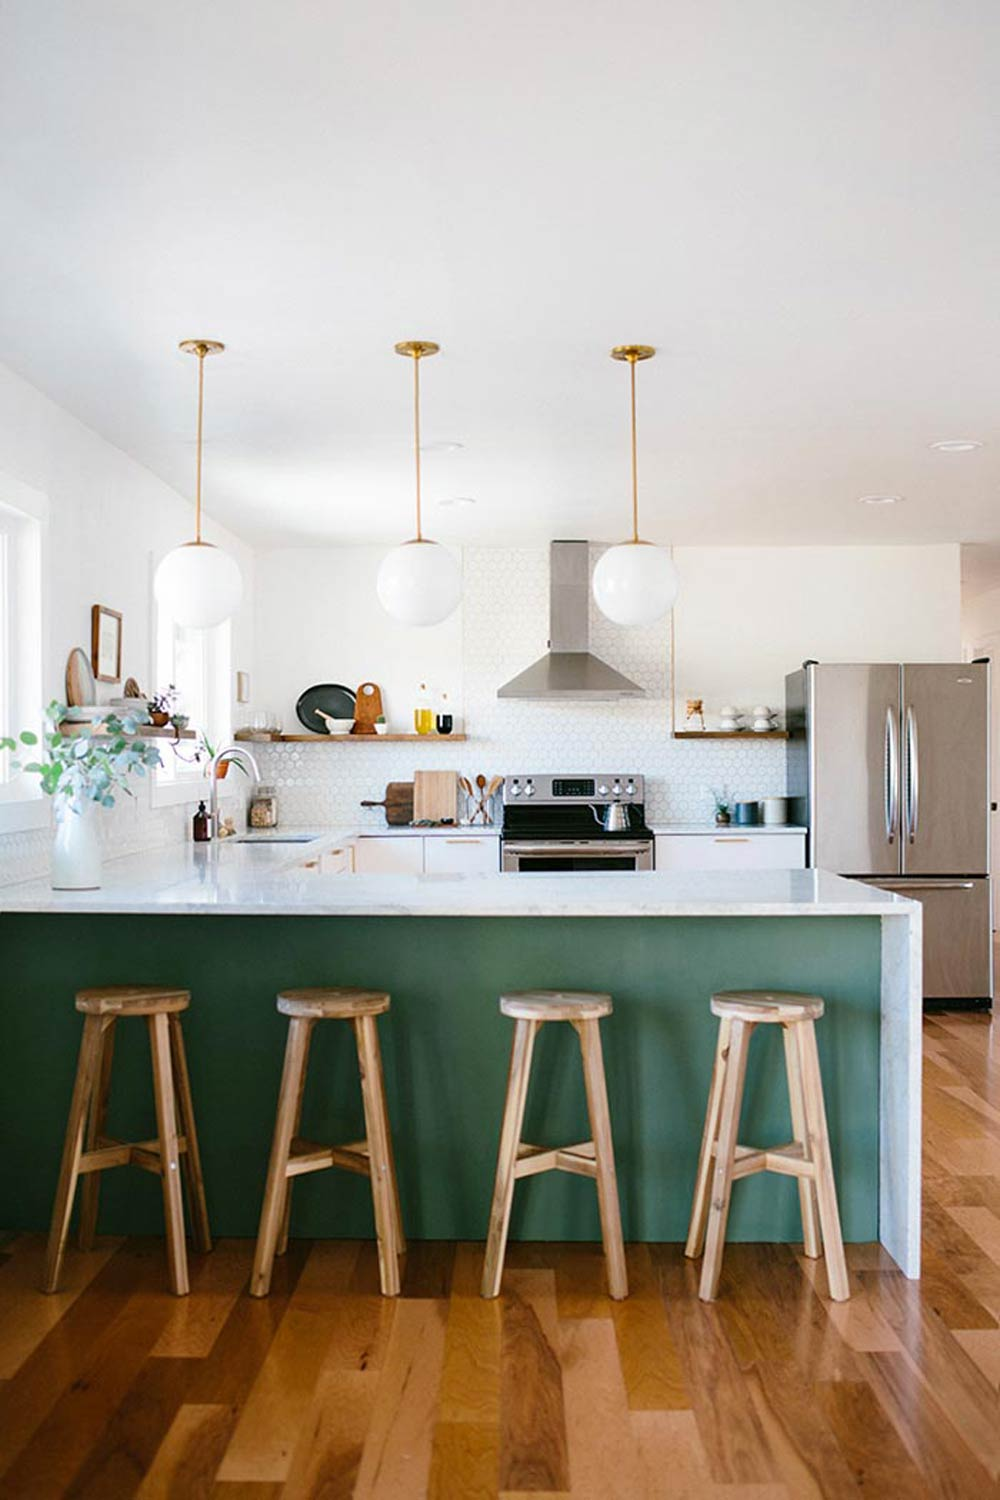 10 of Our Favorite Summery Kitchens, on Design*Sponge